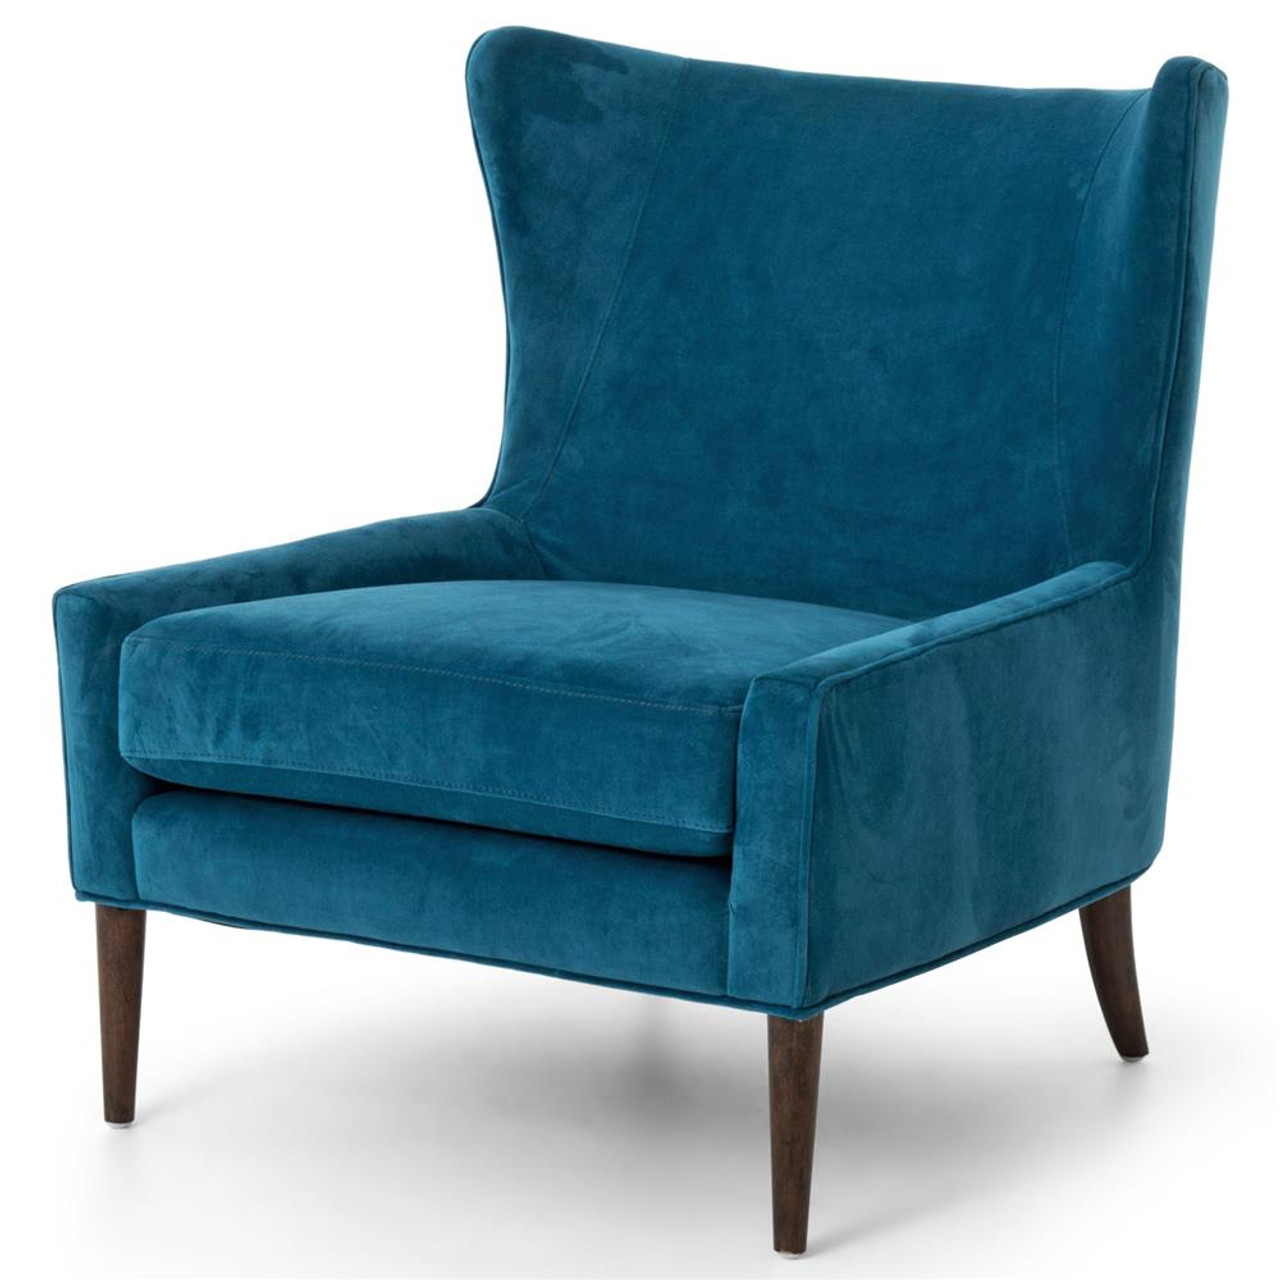 Wing Back Chairs Marlow Upholstered Blue Wing Chair